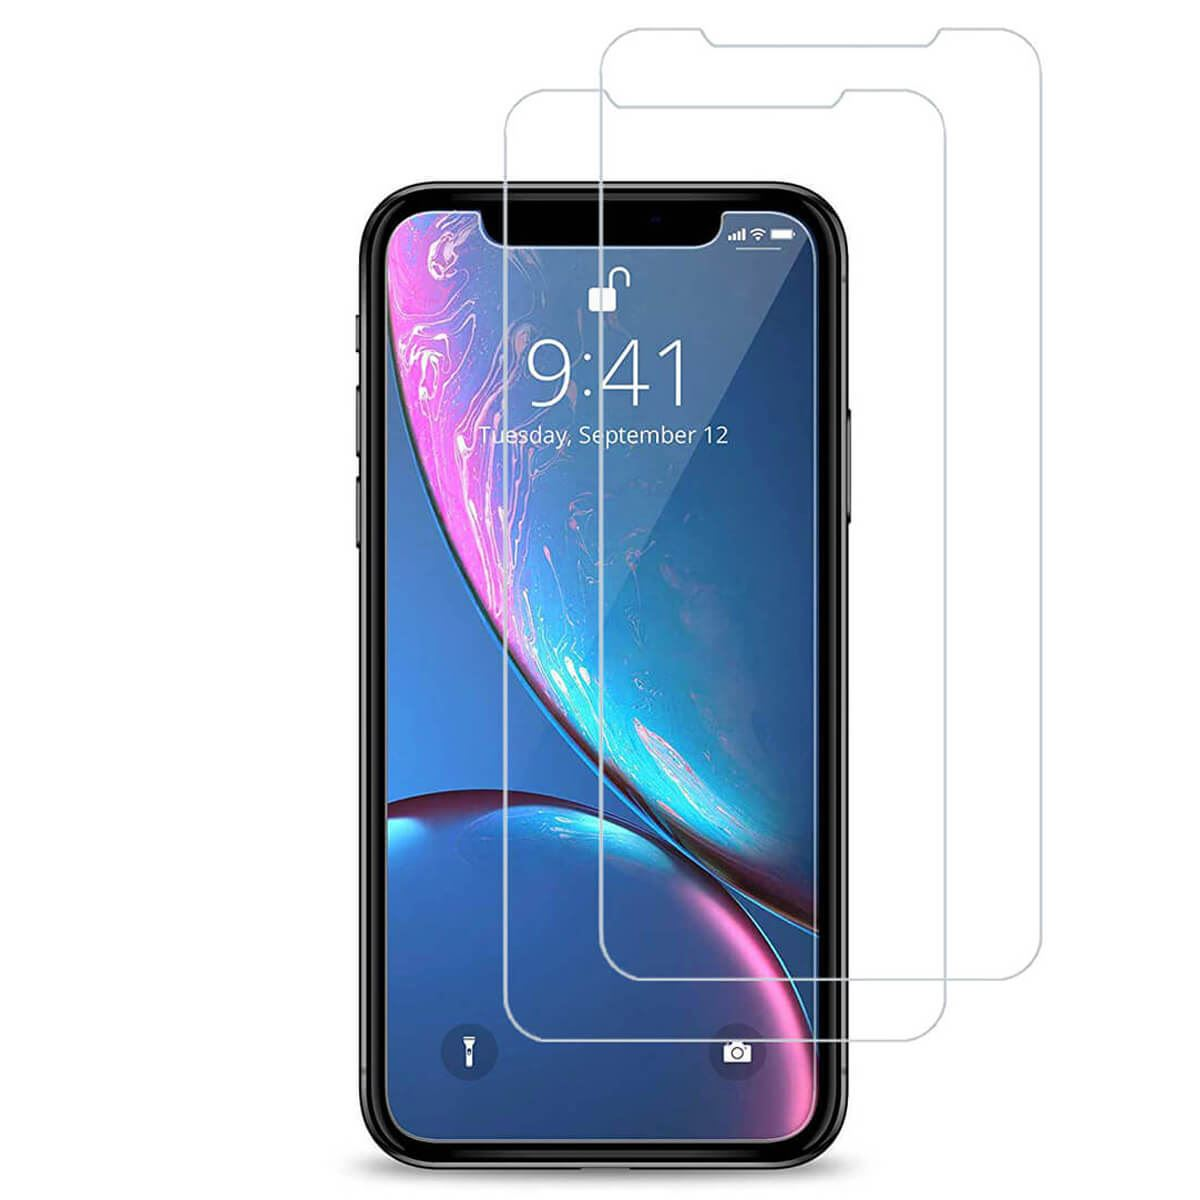 Tempered-Glass-Film-Screen-Protector-For-iPhone-12-Pro-Max-Mini-XR-XS-Max-8-7-6s thumbnail 72